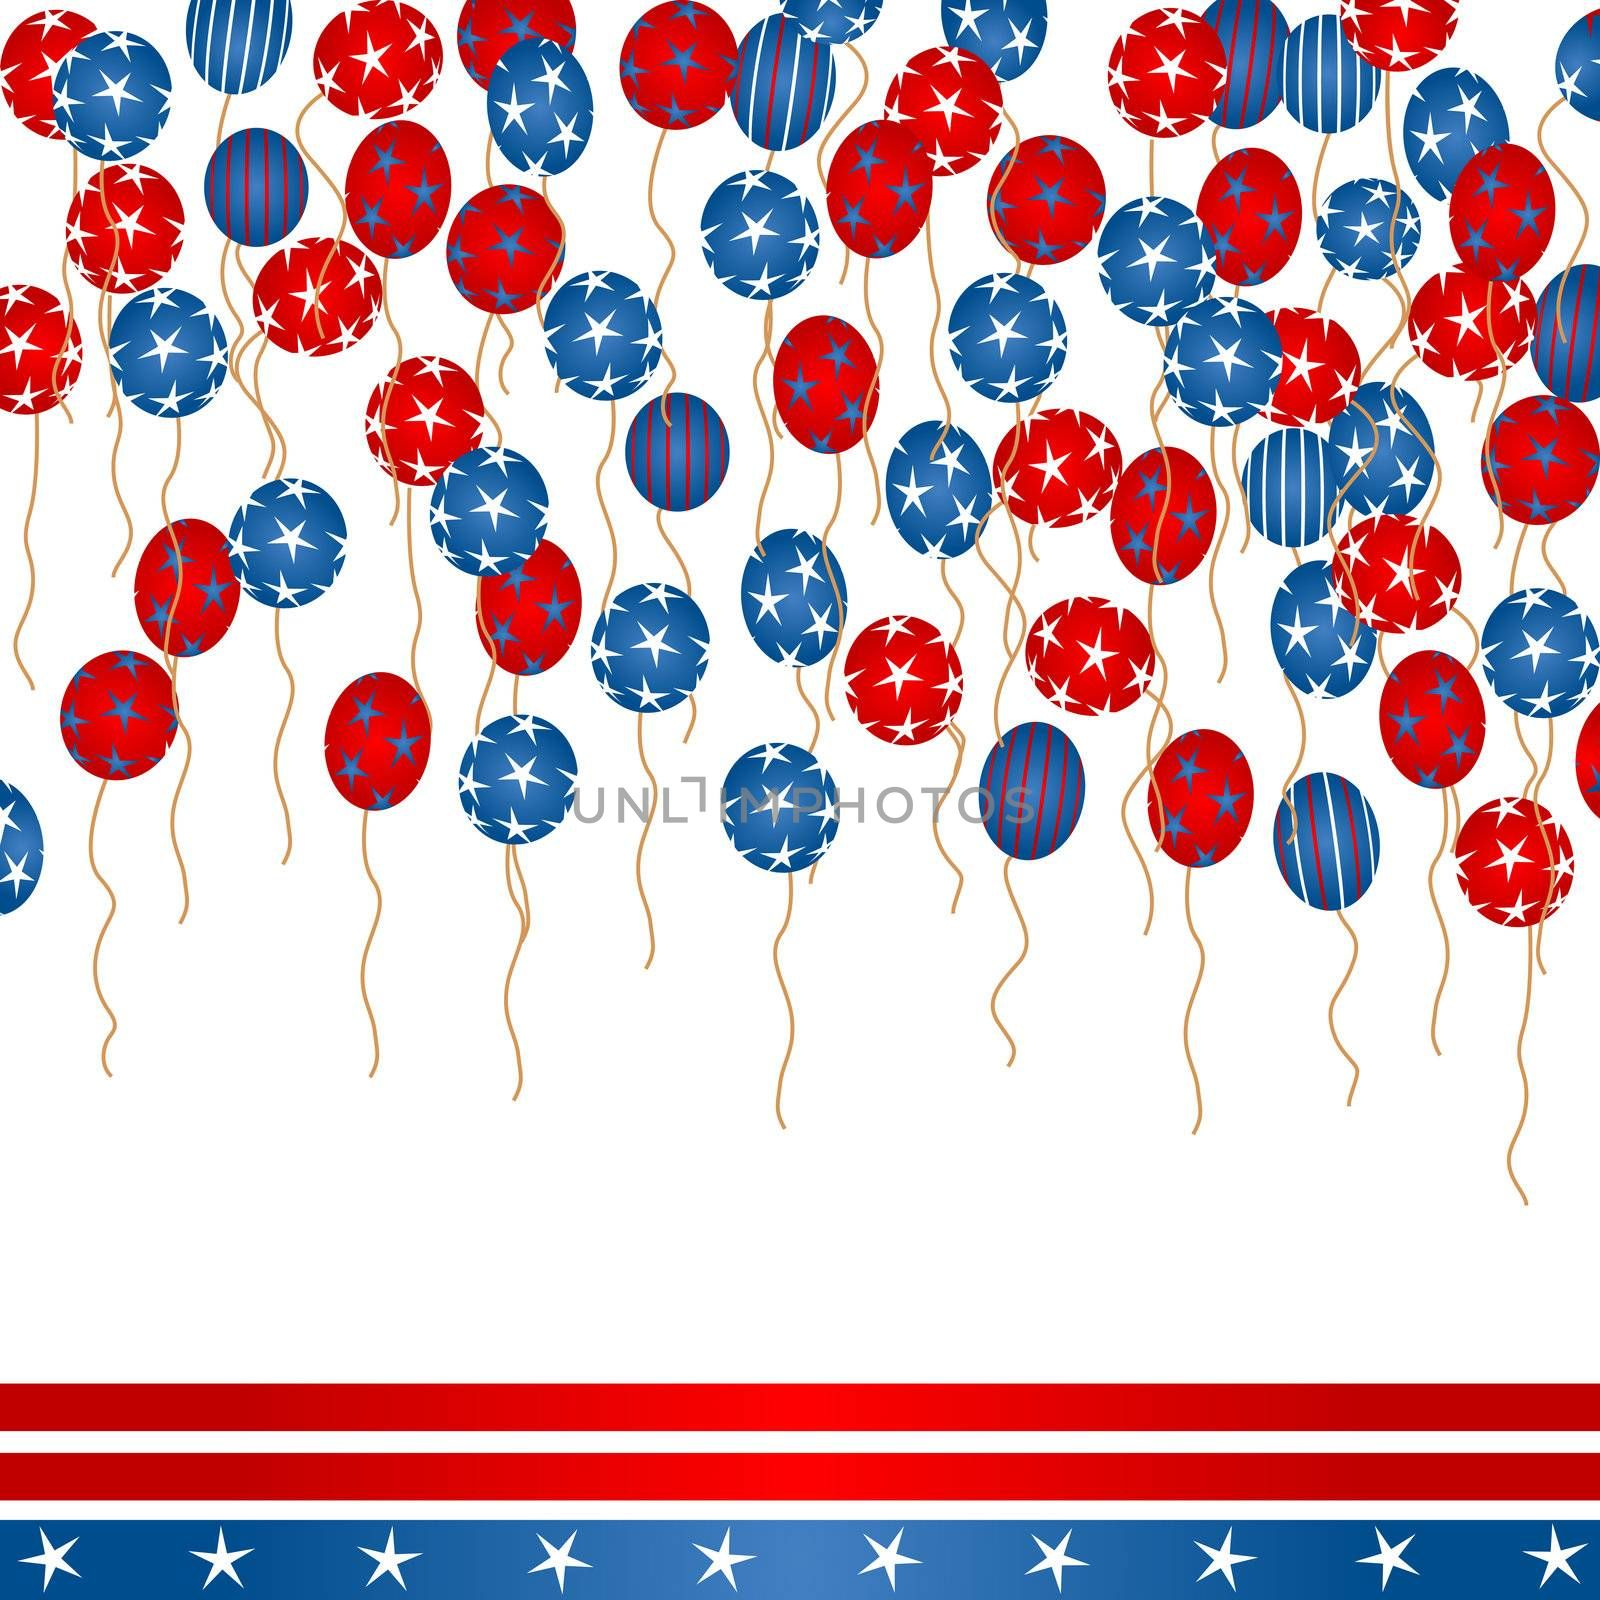 Background illustration with colored balloons, stars and stripes for 4th Of July Day